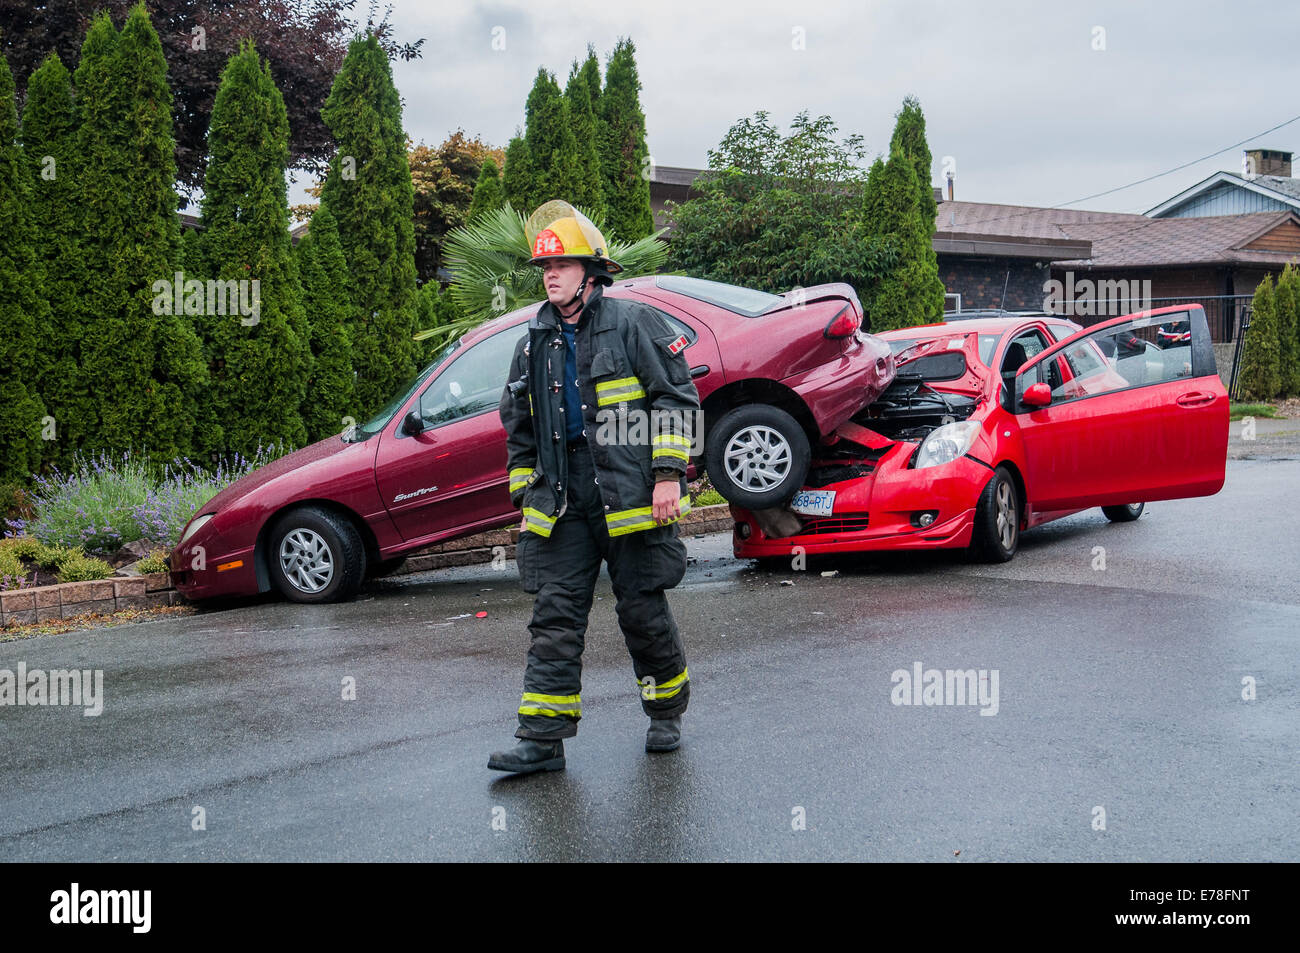 Firemen at  car accident scene. - Stock Image